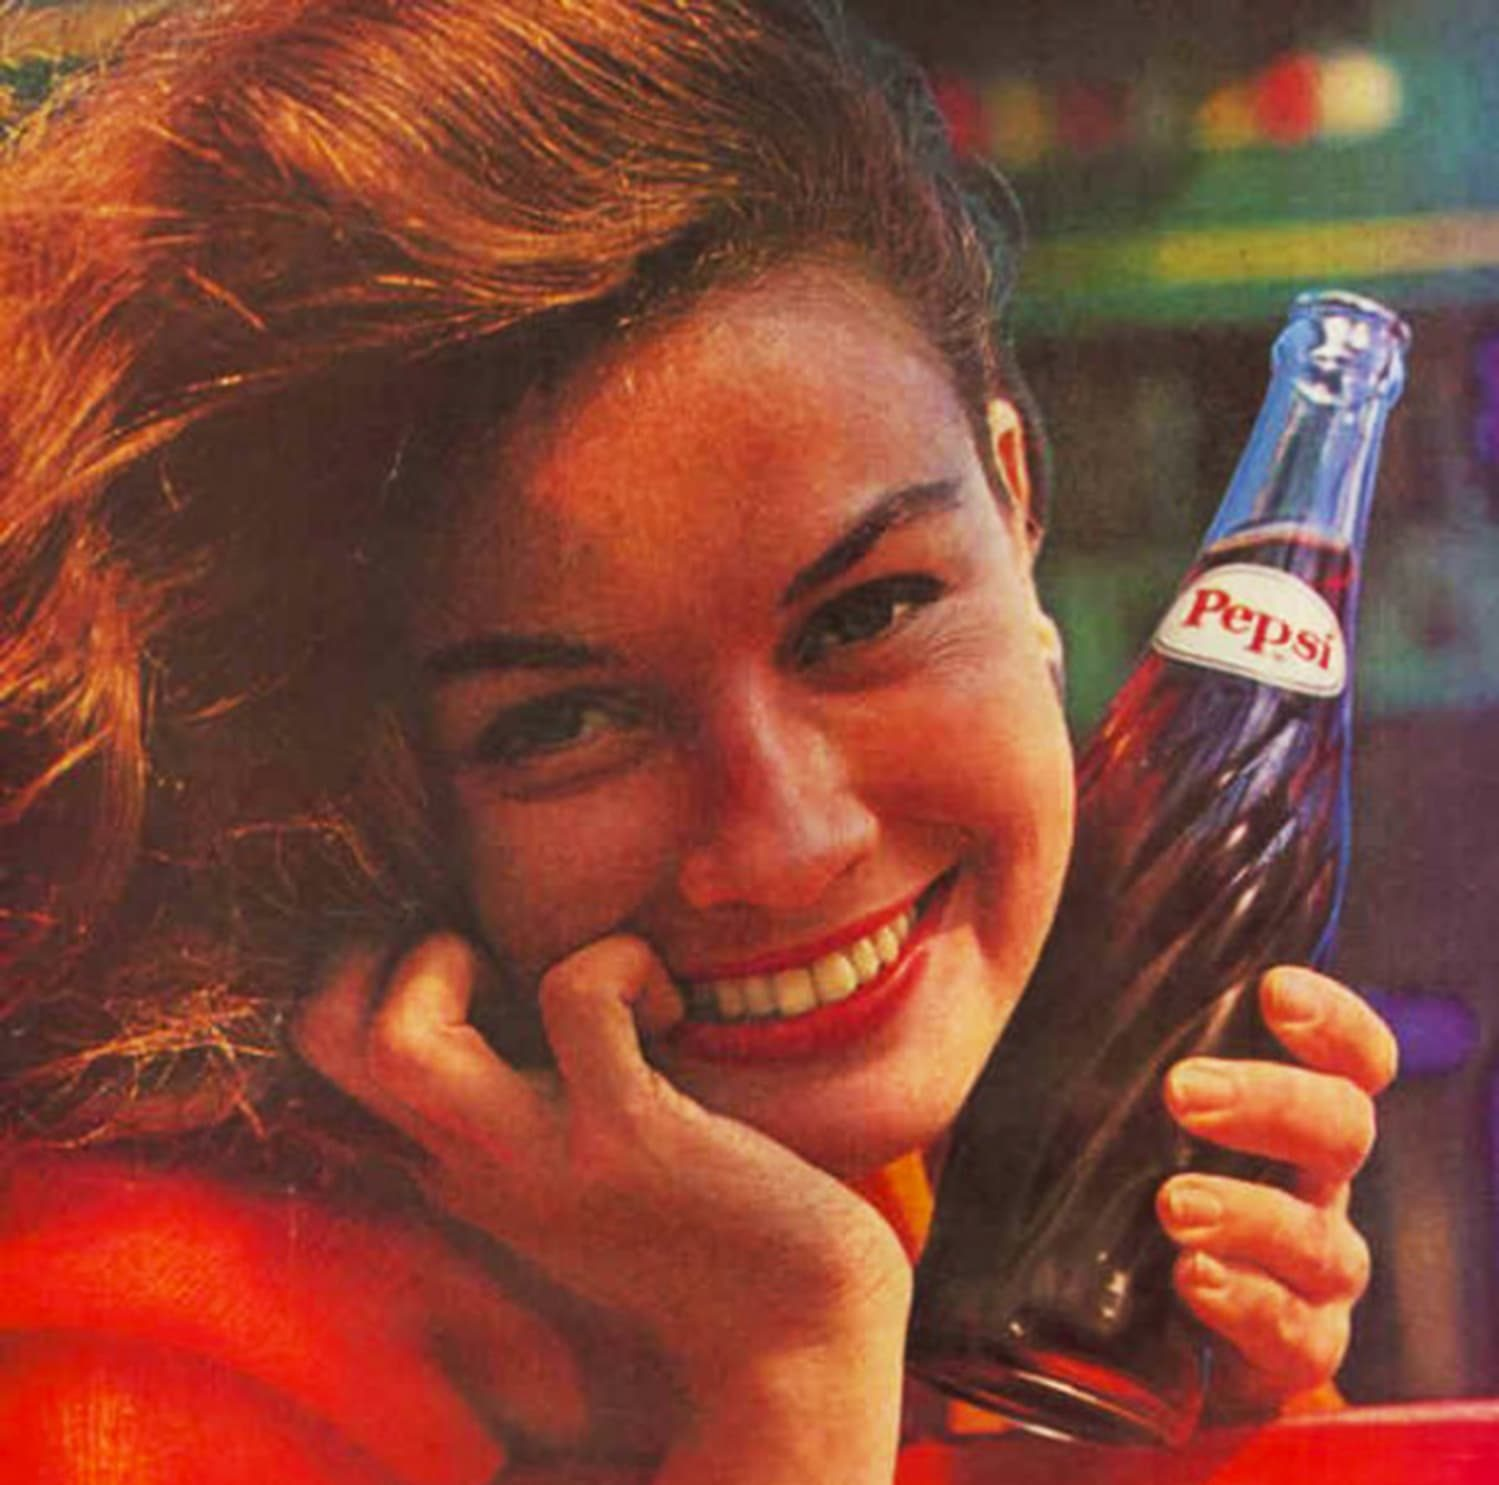 1 198 e1607696564608 The Pepsi Bottle Cap Competition That Led To Rioting, Lawsuits and Deaths